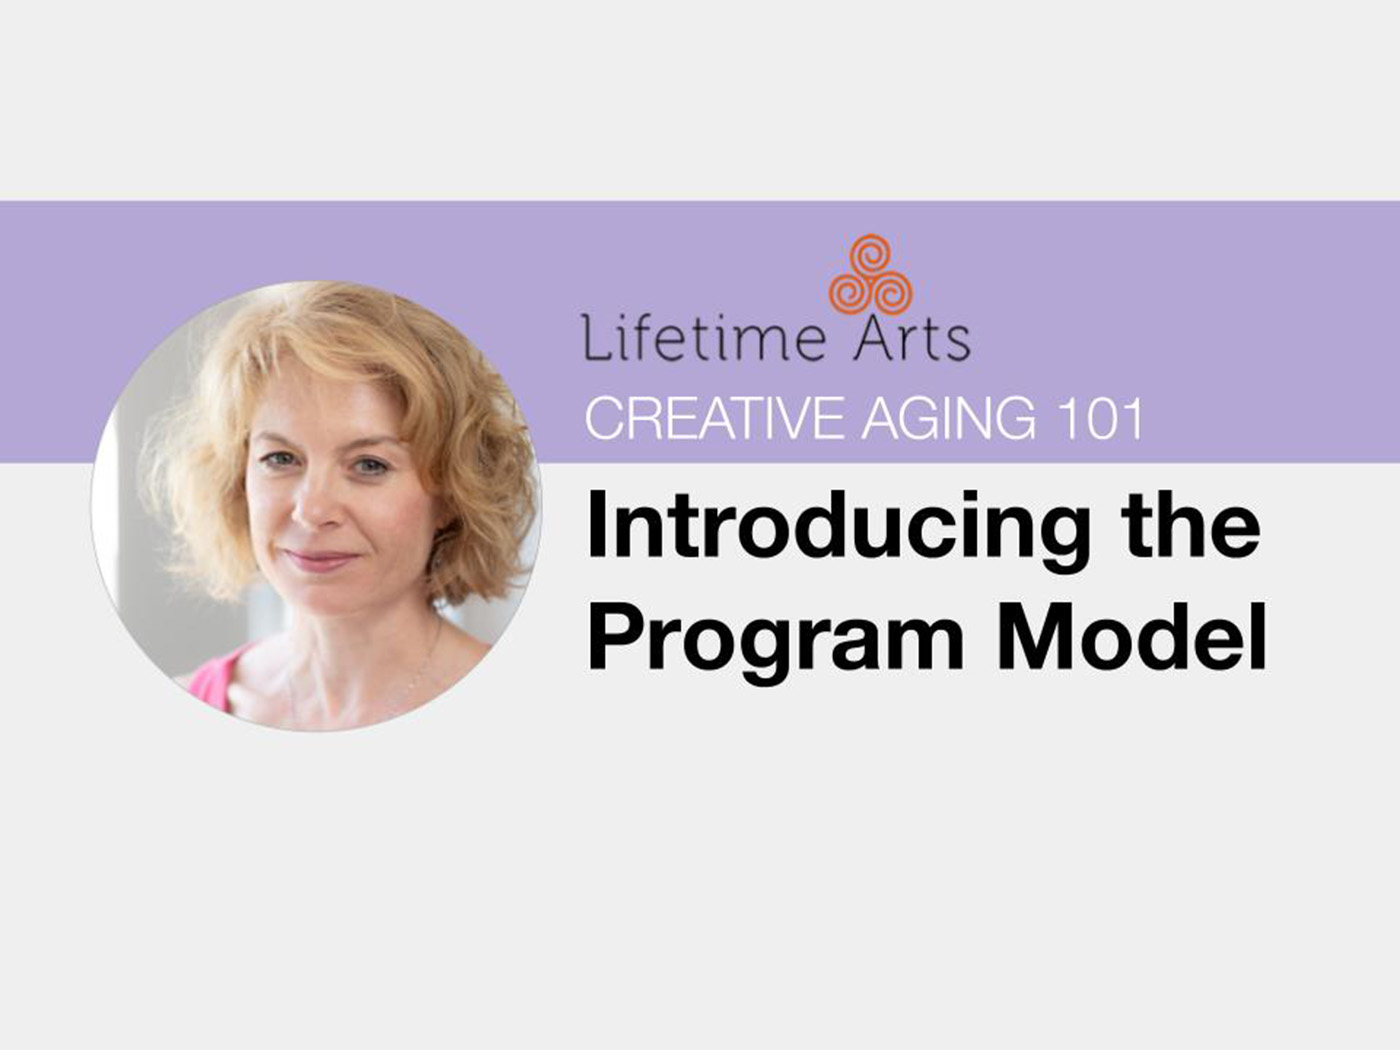 Image featuring headshot of Lifetime Arts' Director of Education, Annie Montgomery with title of lesson.